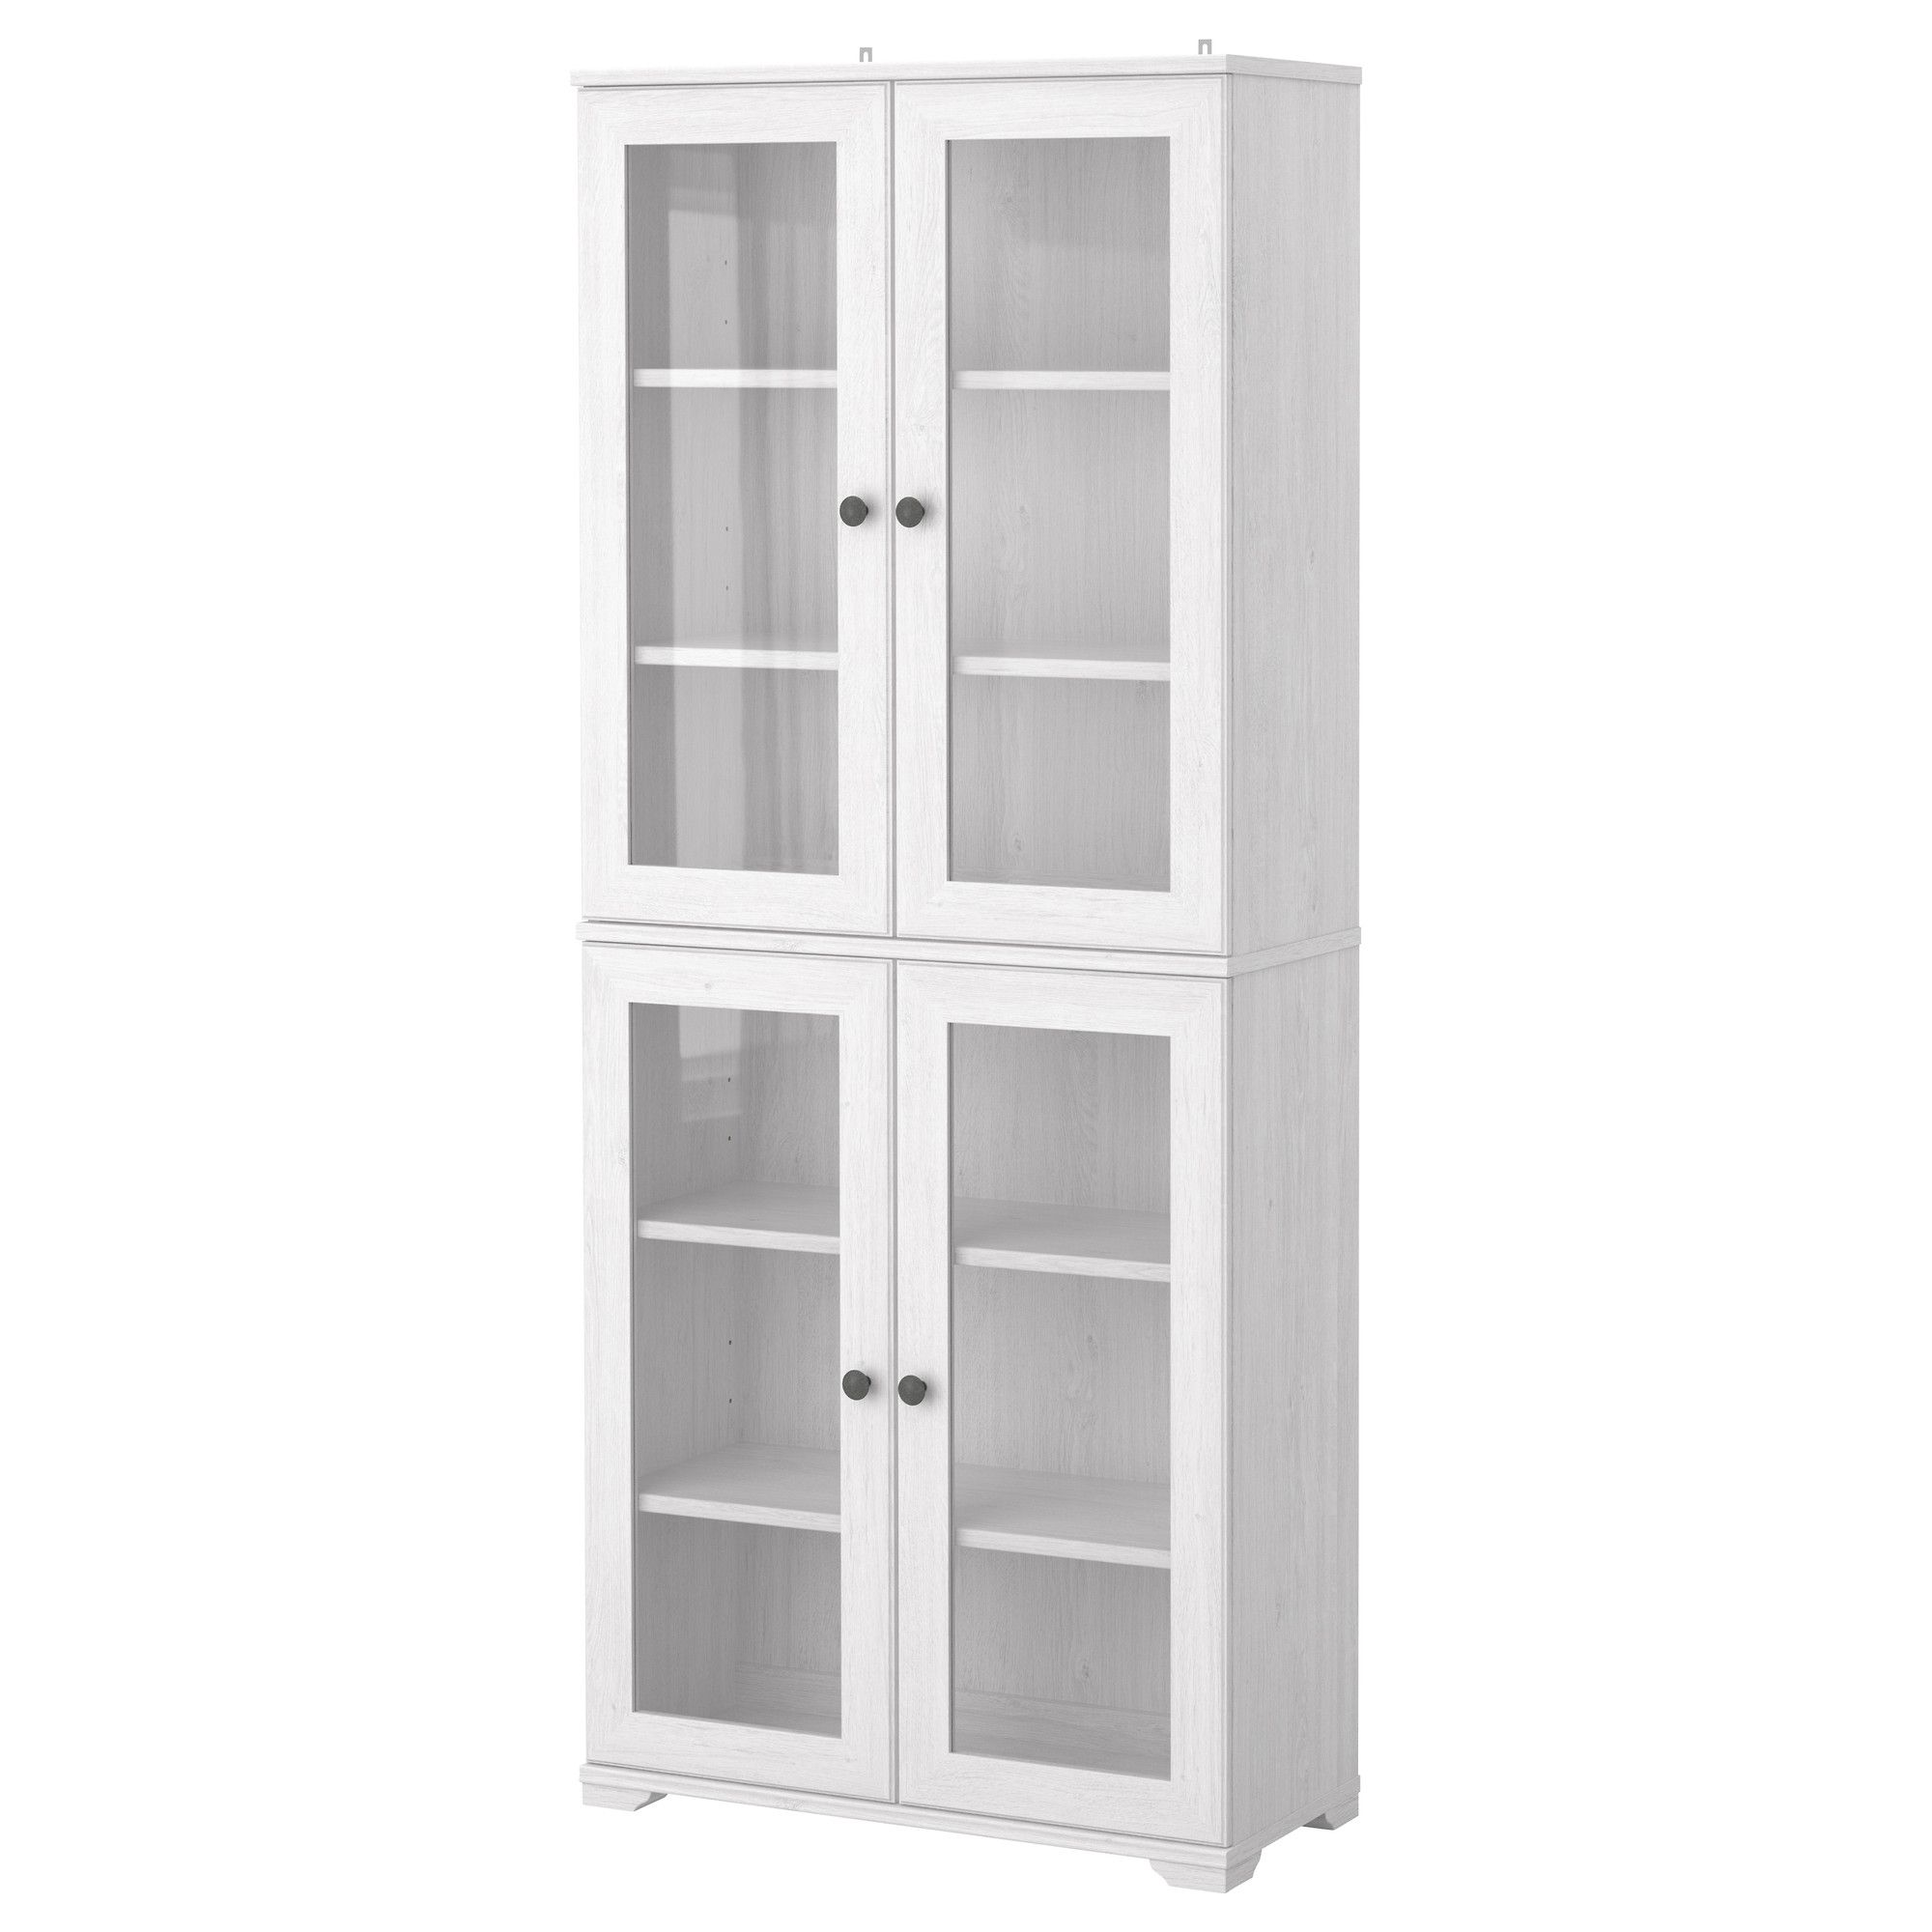 Borgsj glass door cabinet white ikea 135 as pictured for Kitchen door with window